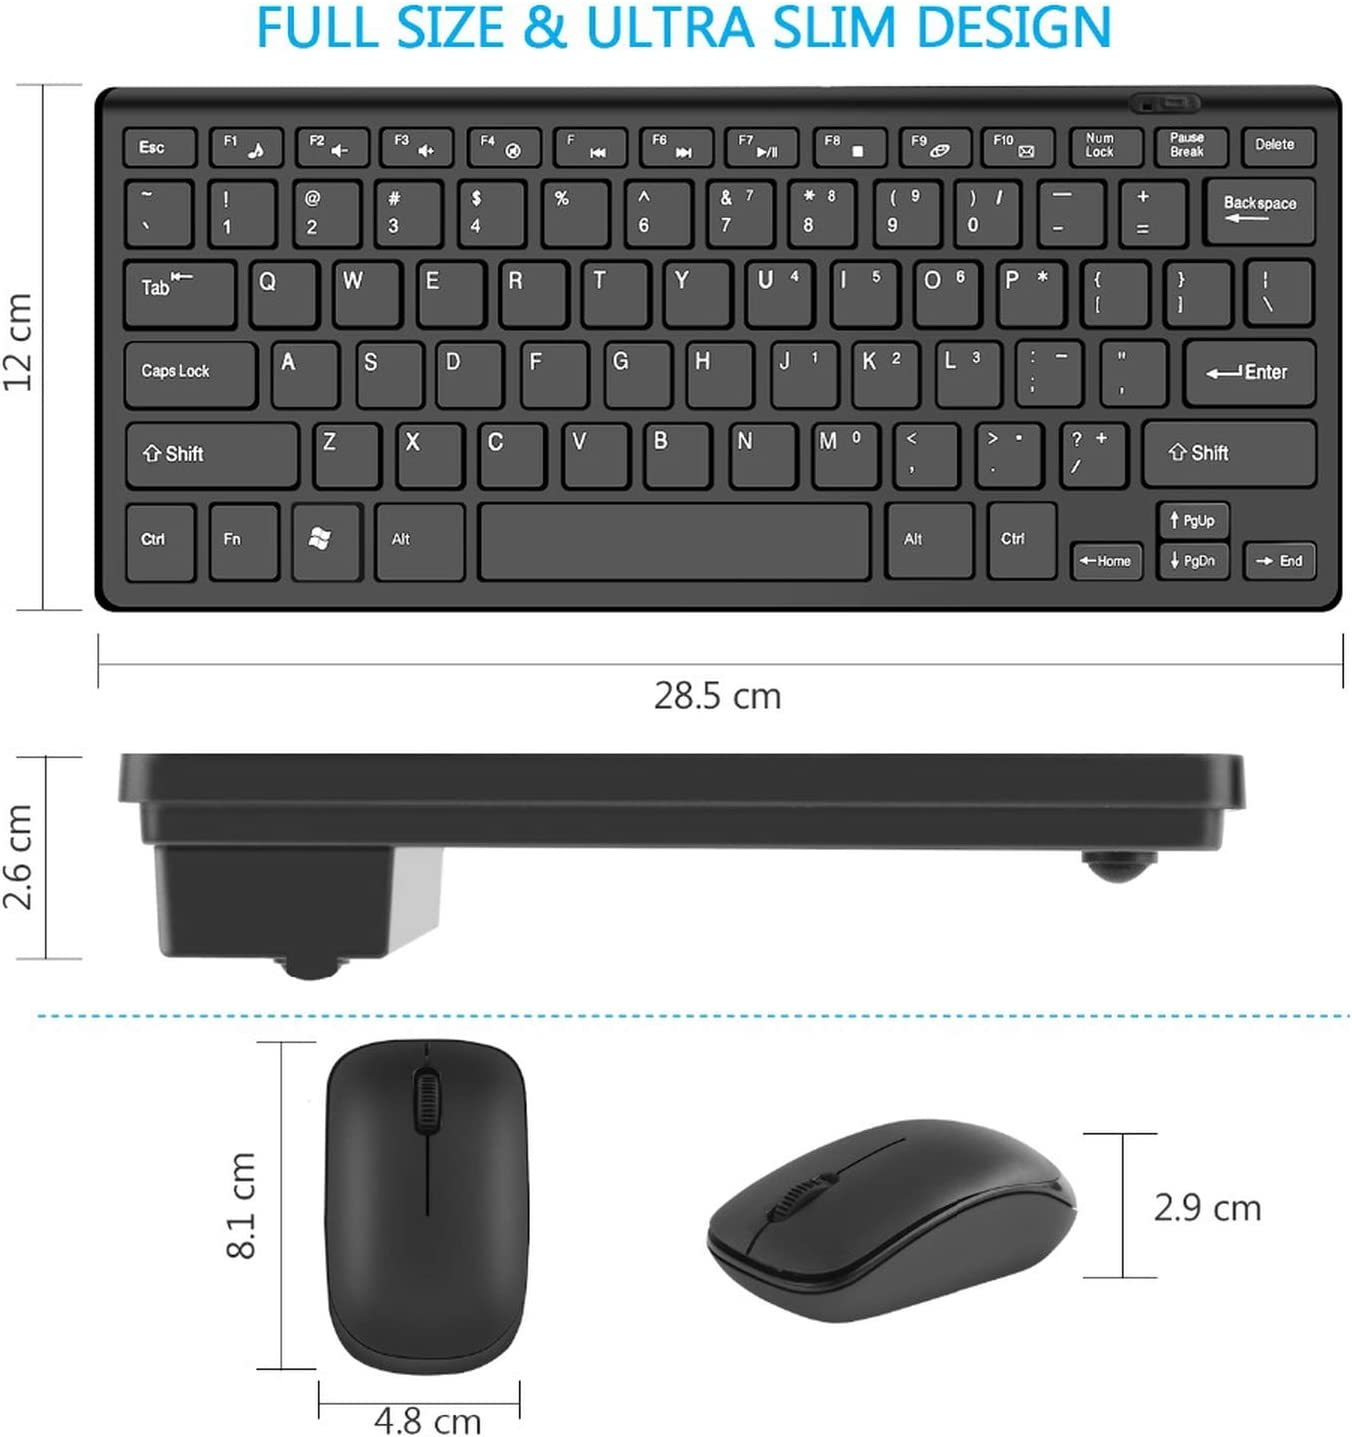 Mini Wireless Keyboard for Mac TV Box 2.4Ghz Keyboard Mouse Mice Combo Notebook Laptop Computer Accessories for Android Windows,White